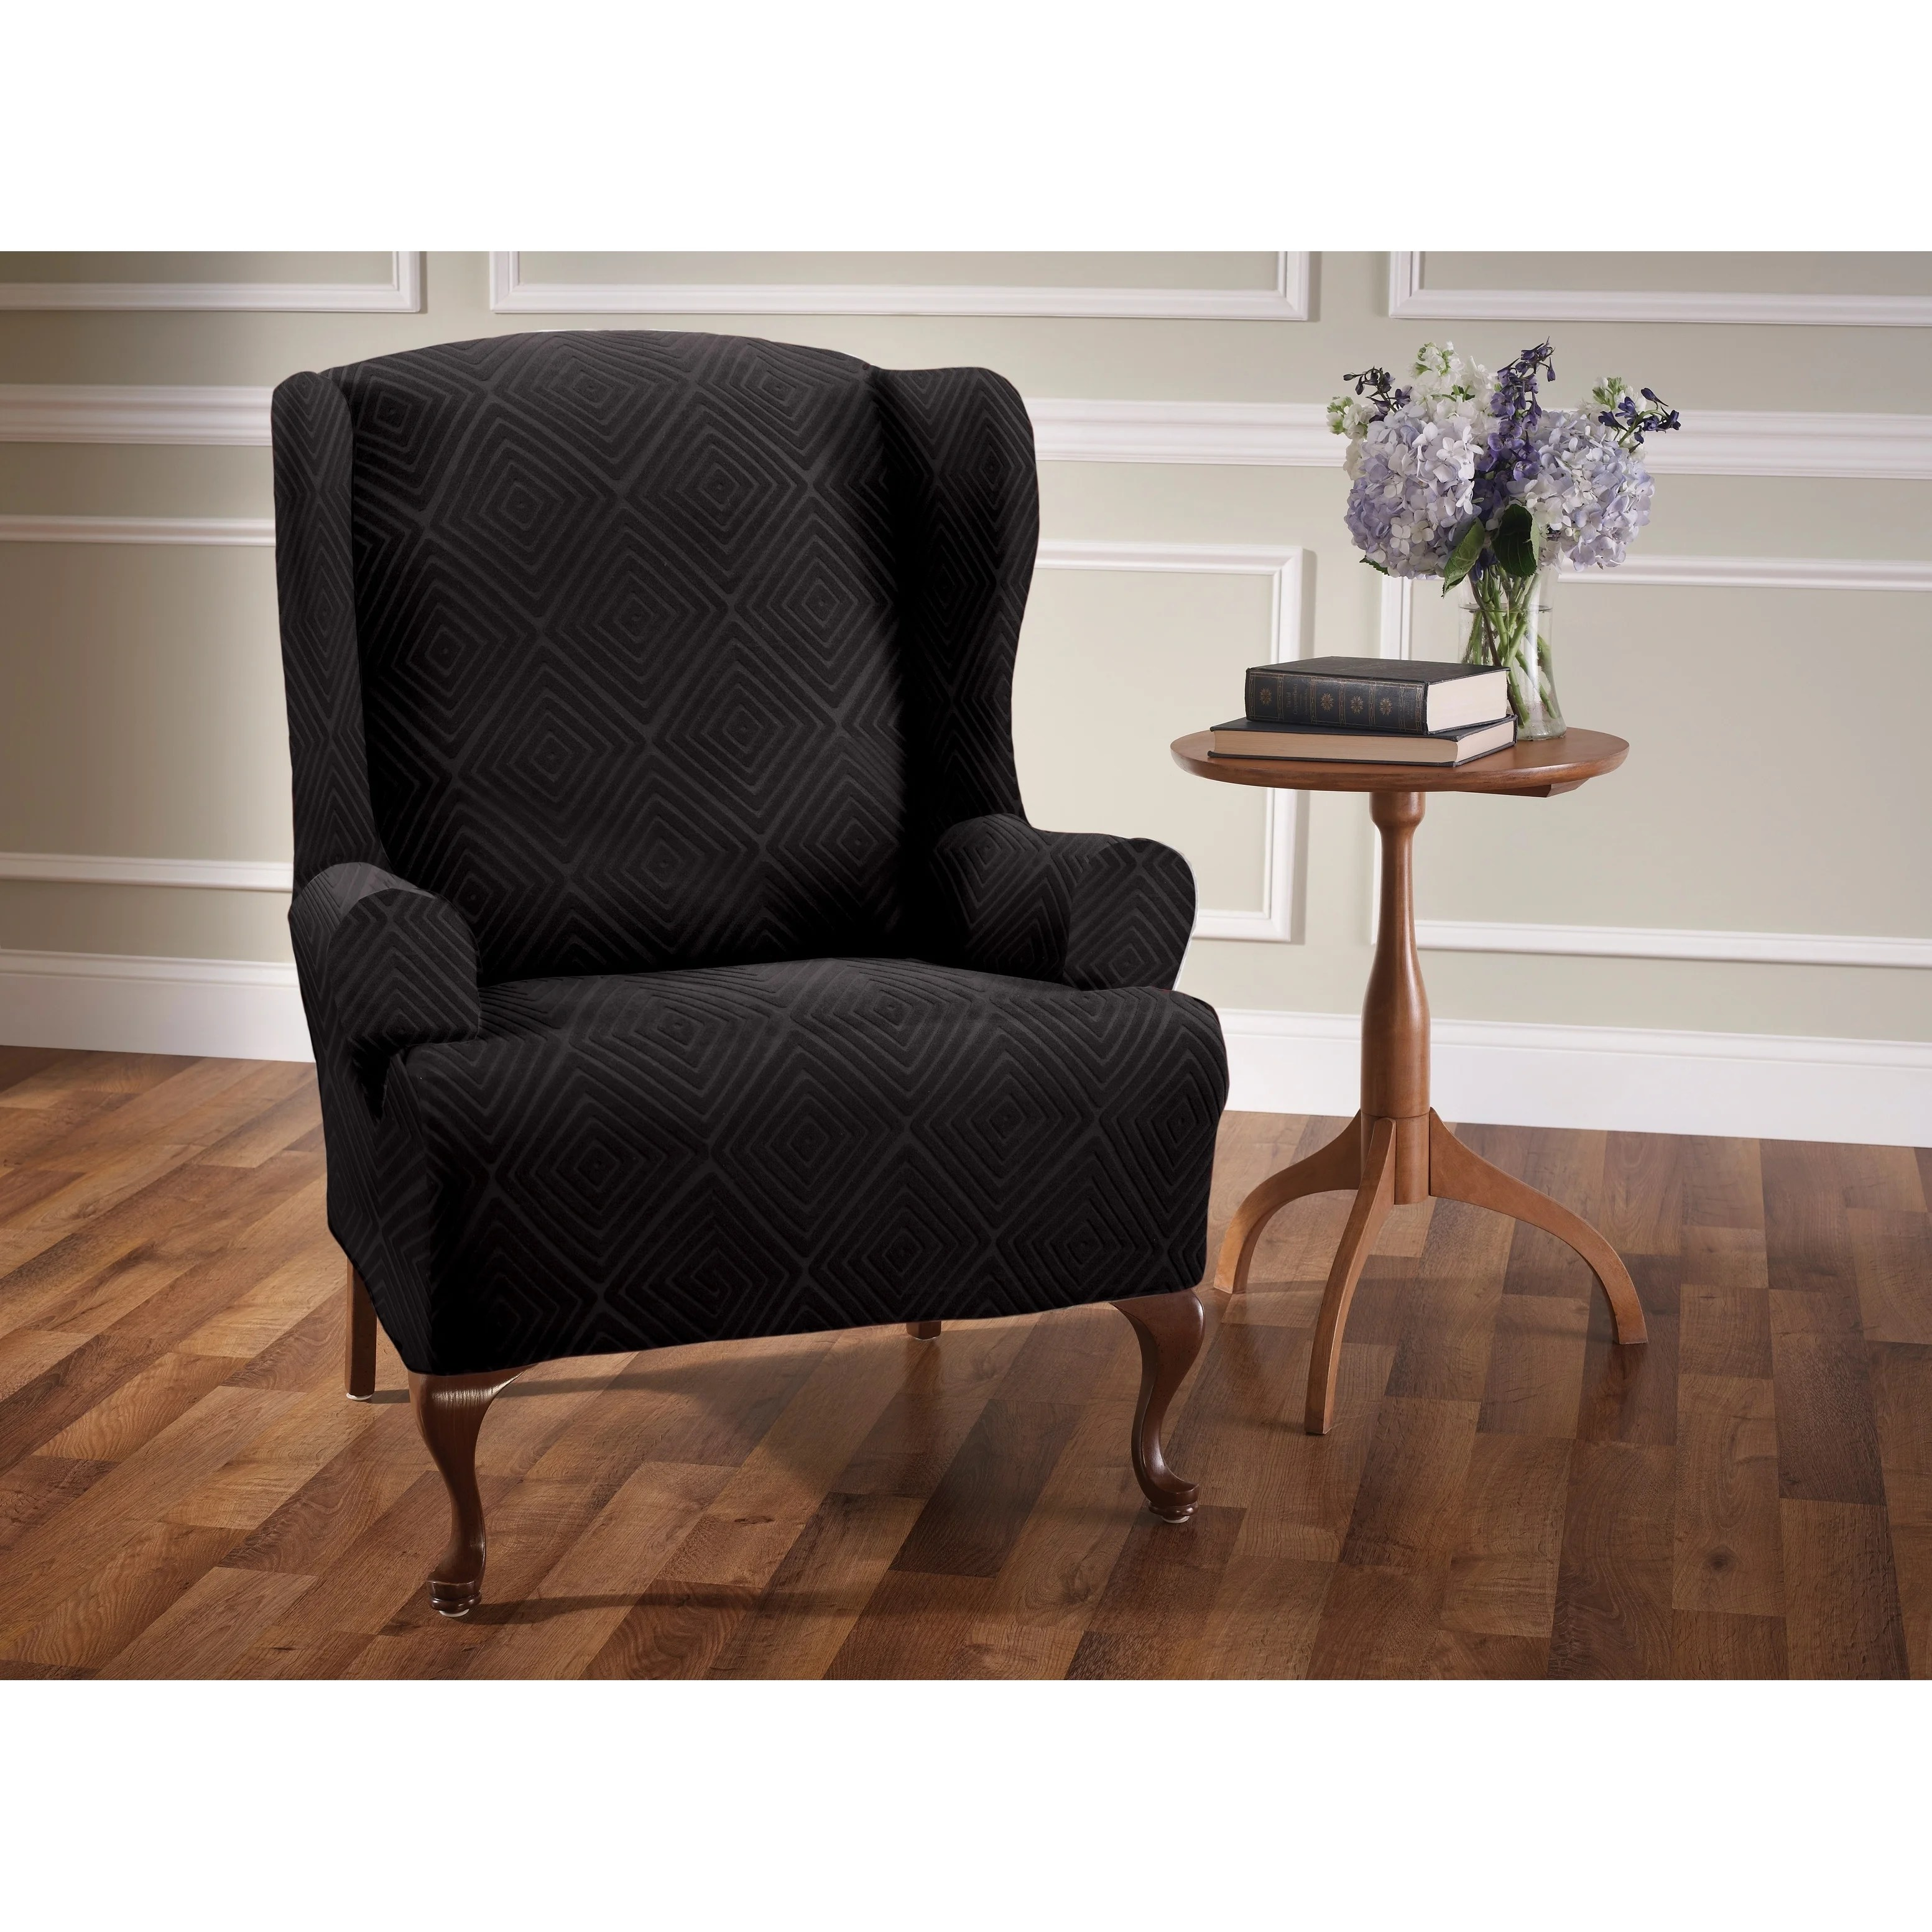 chair covers overstock round kitchen table and chairs walmart buy recliner wing slipcovers online at